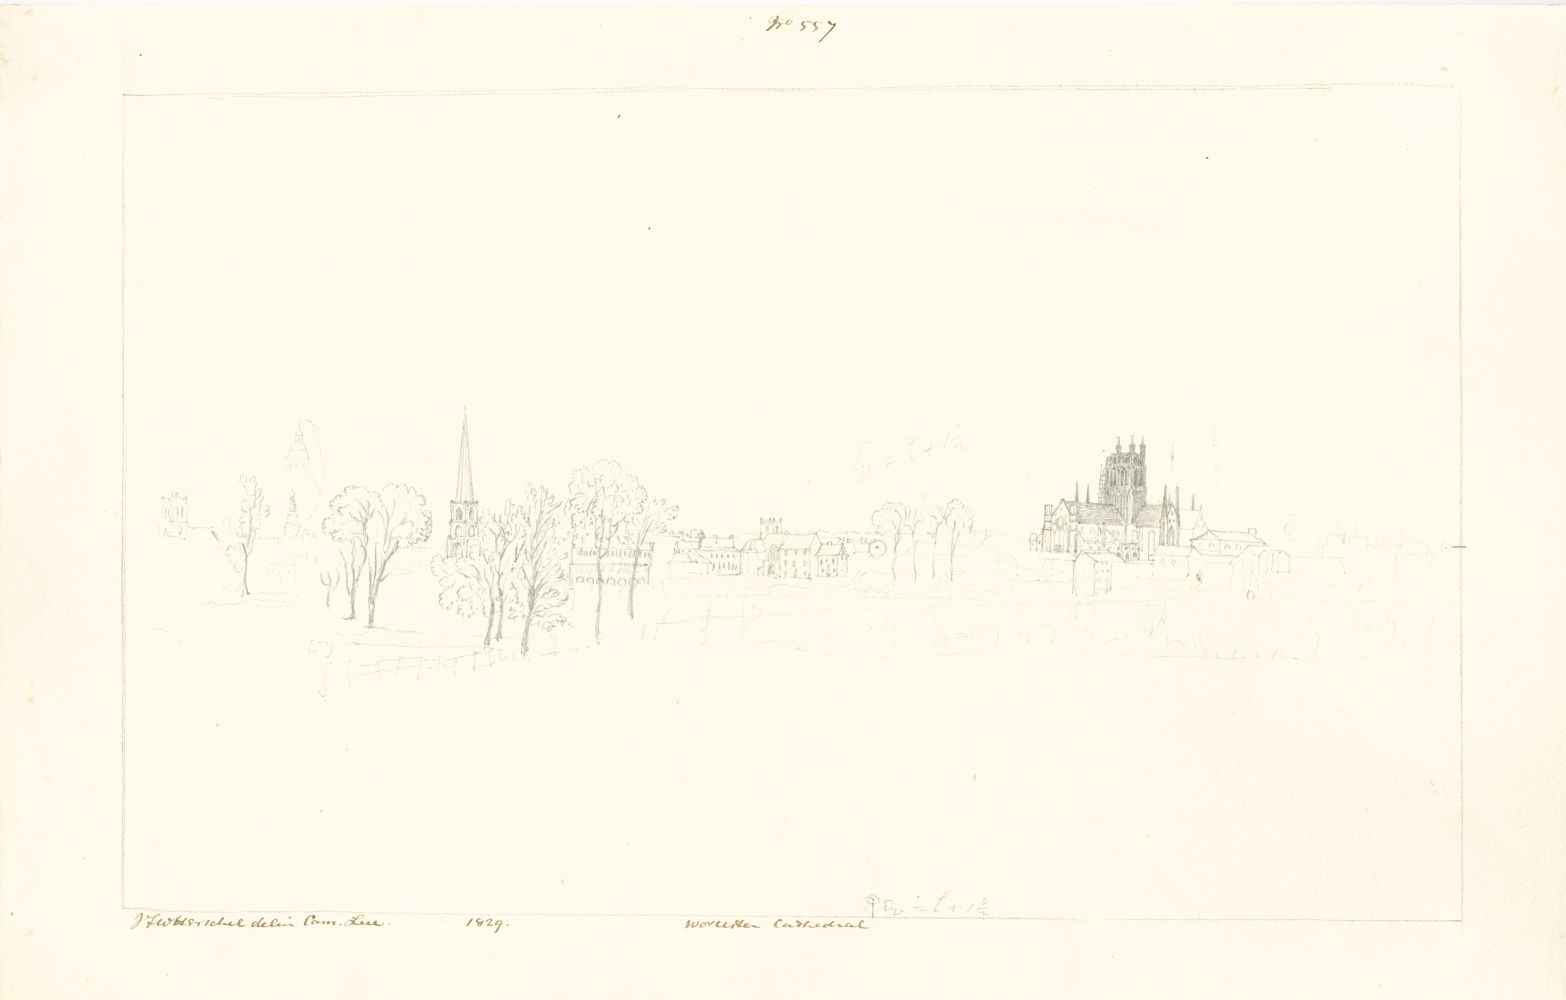 "Sir John Frederick William HERSCHEL (English, 1792-1872) ""No 557 Worcester Cathedral"", 1829 Camera lucida drawing, pencil on paper 20.2 x 32.2 cm on 24.4 x 38.5 cm paper Watermark ""J Whatman Turkey Mill"". Numbered, signed, dated and titled ""No 557 / JFW Herschel delin Cam. Luc. / 1829 / Worcester Cathedral"" in ink in border. Titled ""Worcester"" in pencil on verso."